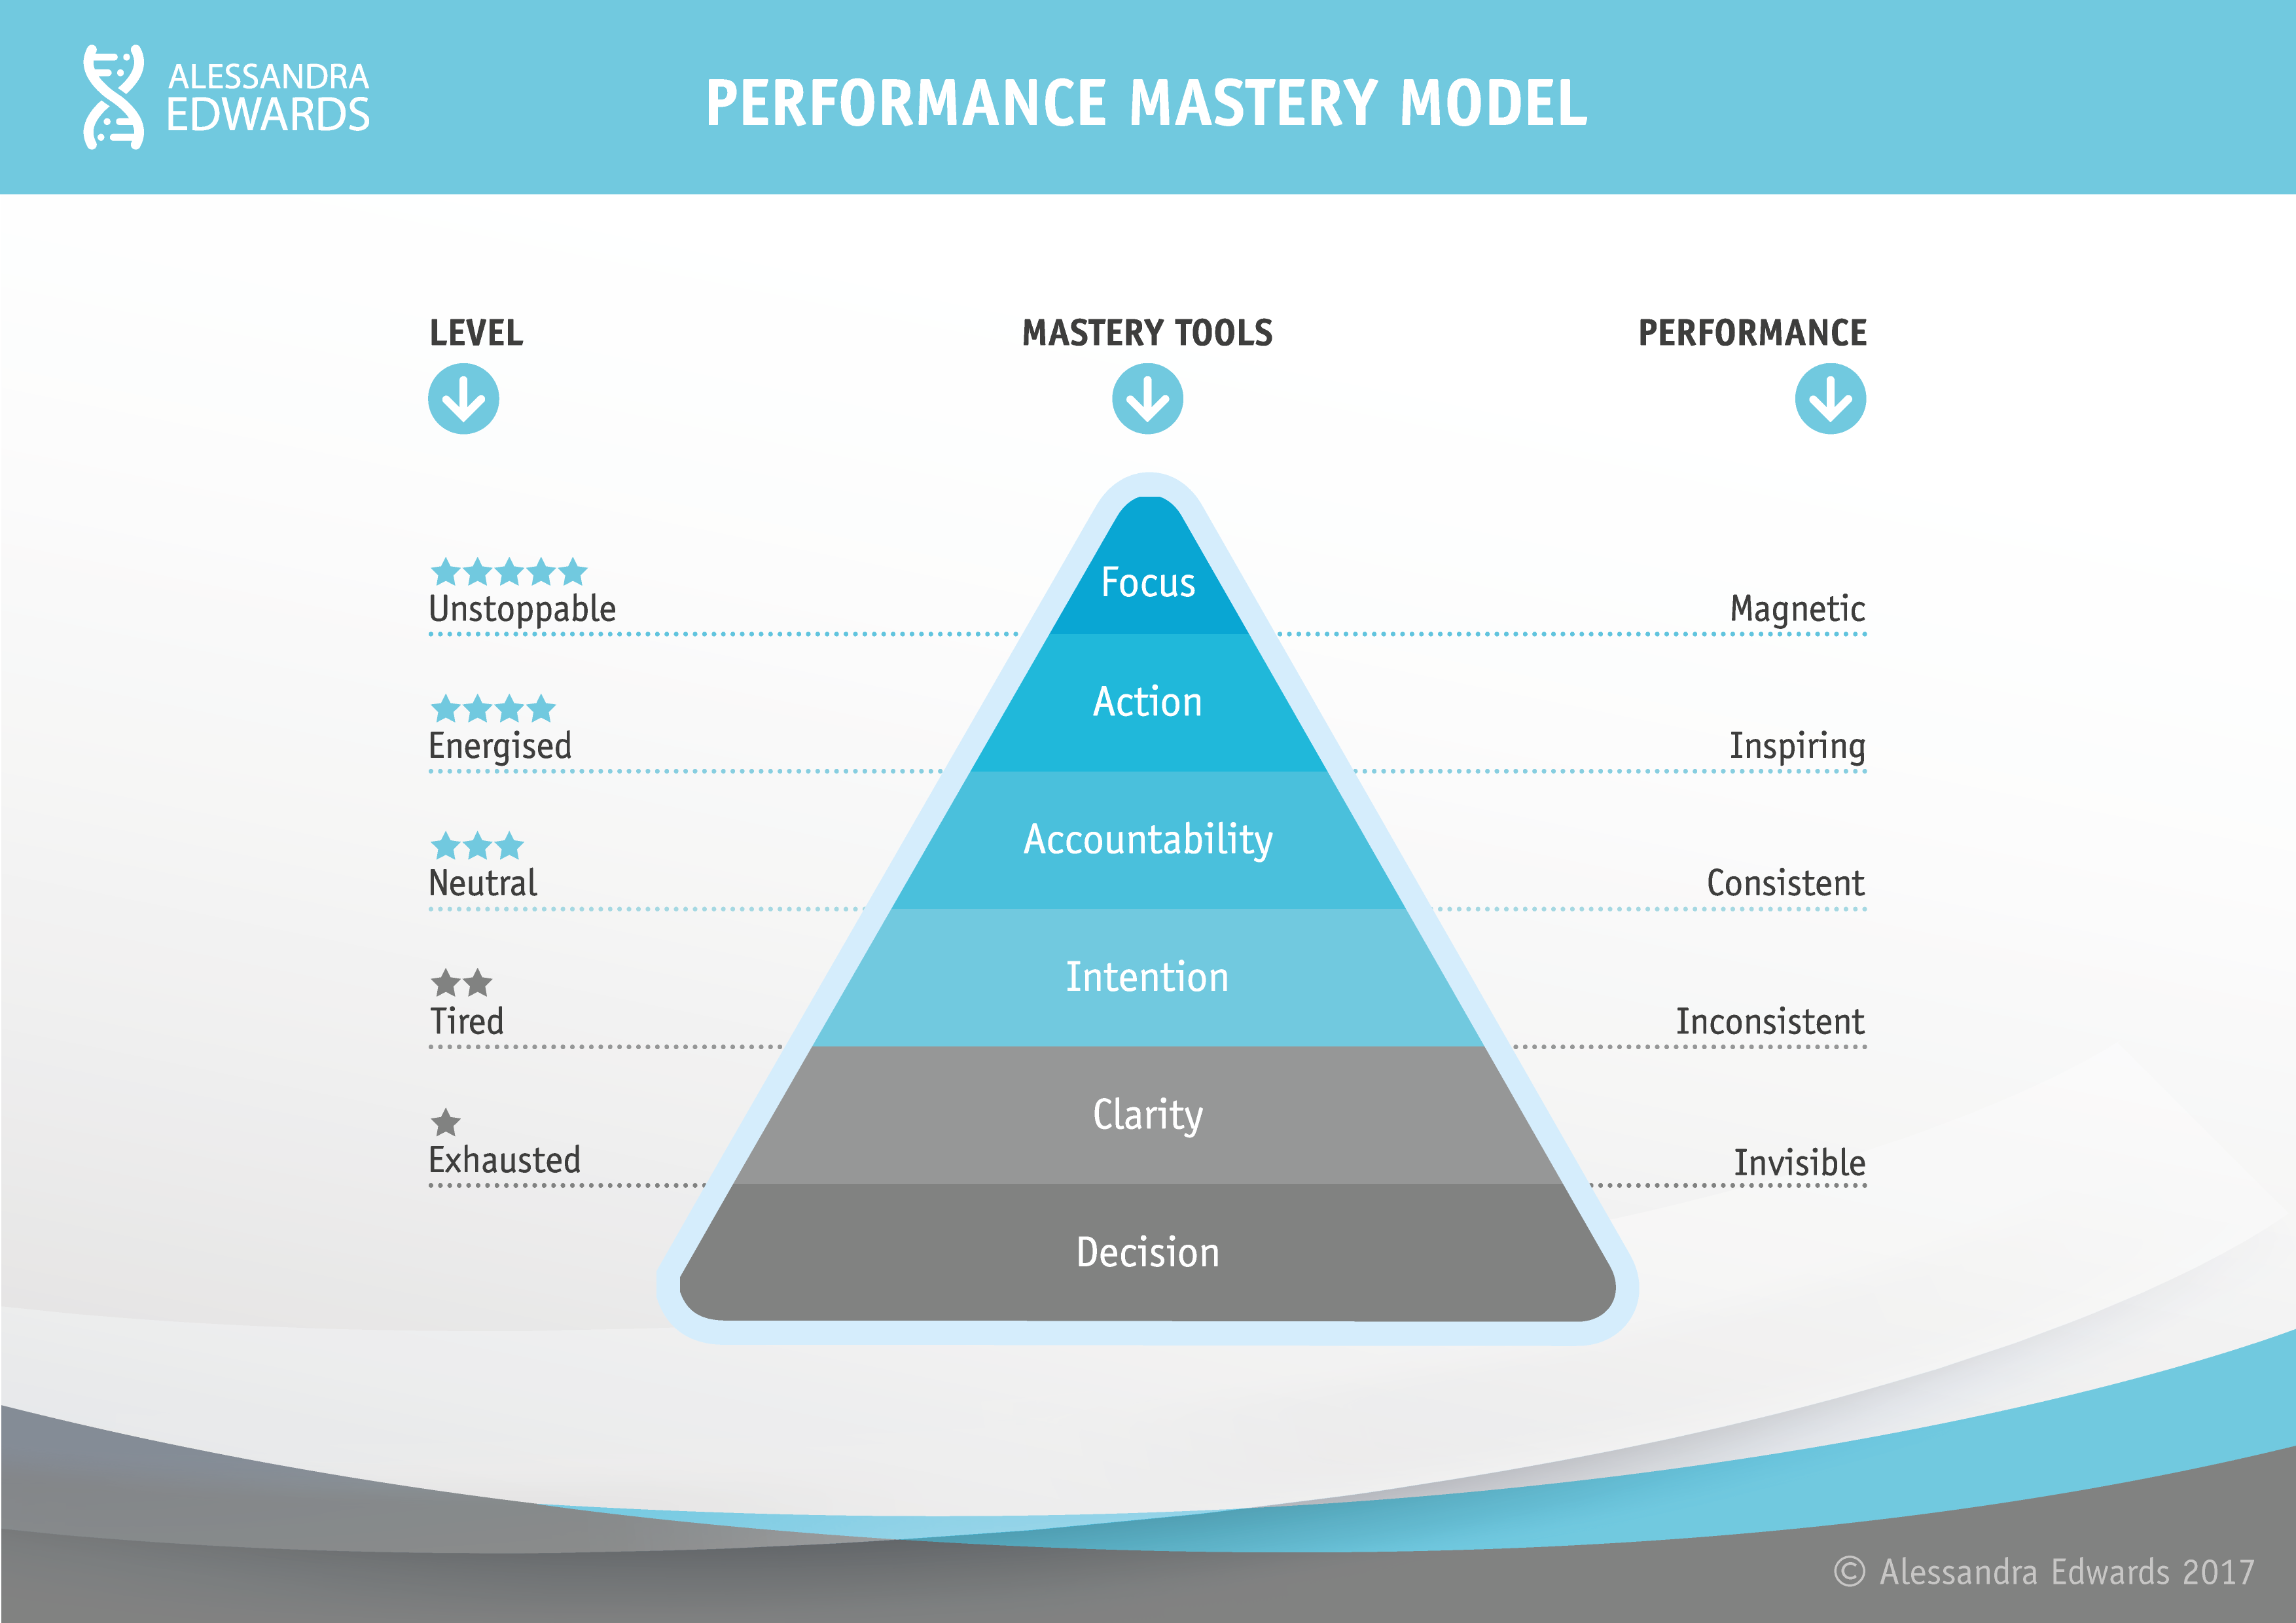 Performance Mastery Model